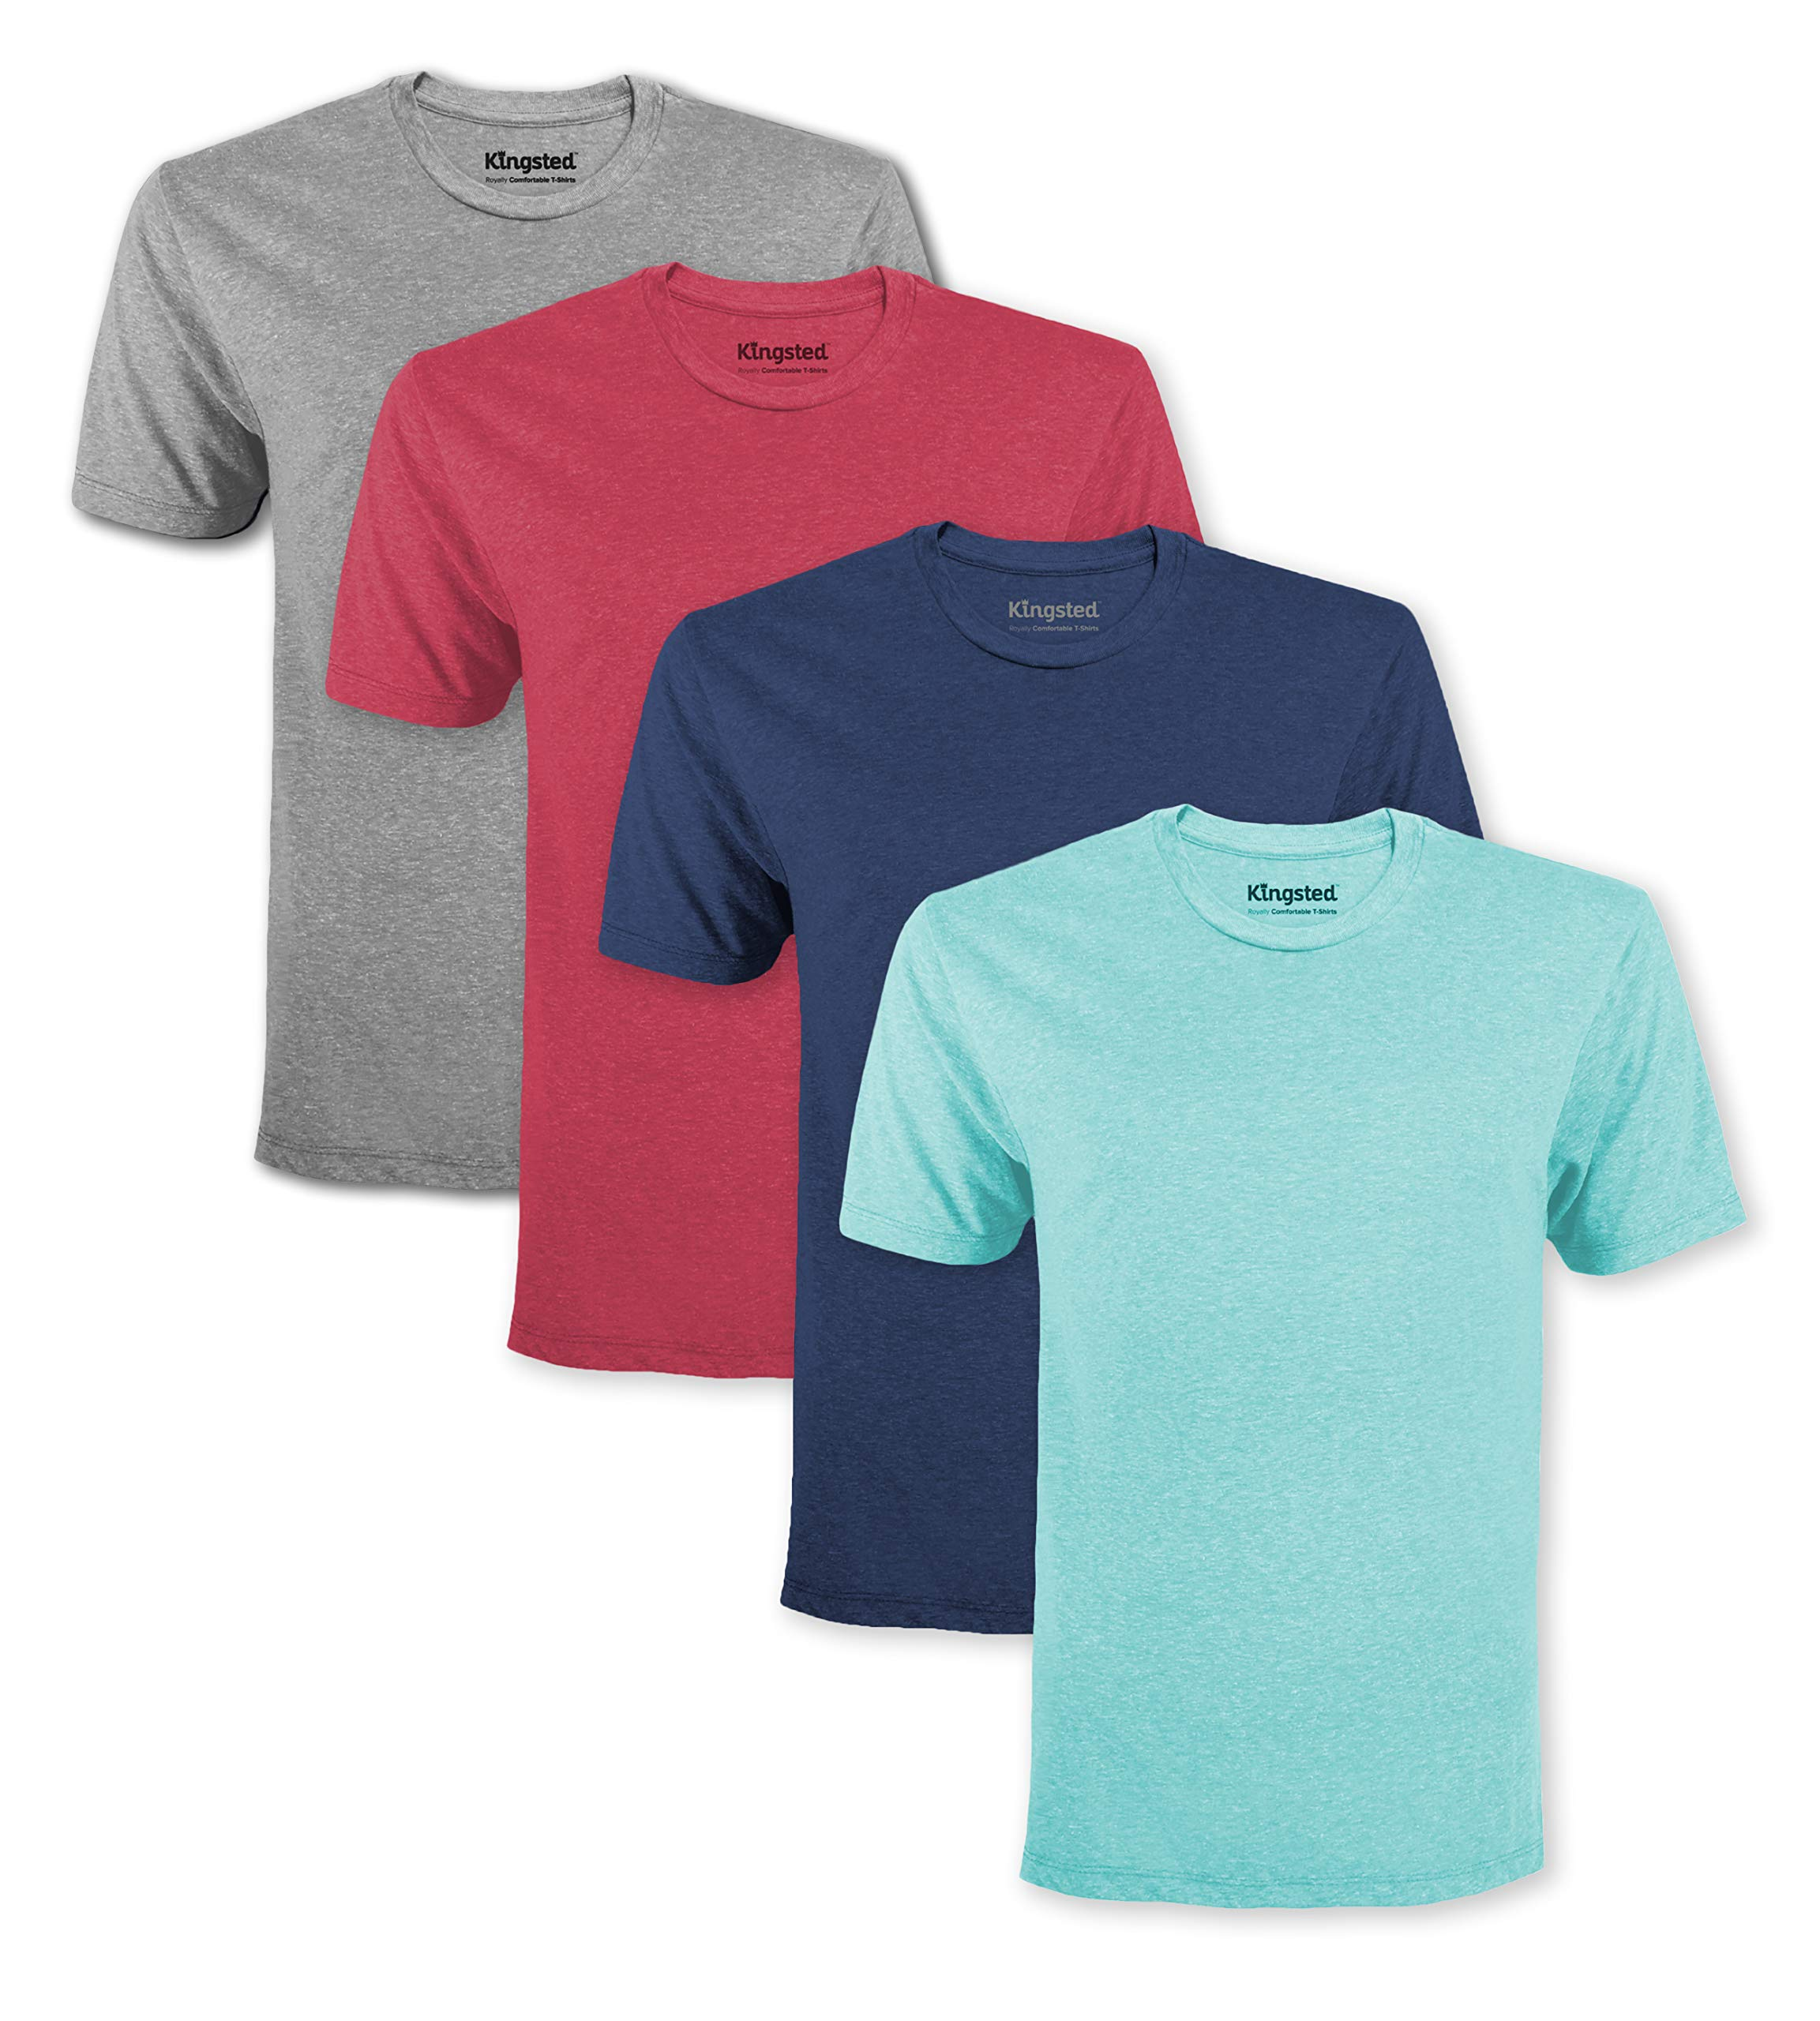 Kingsted Men's T-Shirts Pack - Royally Comfortable - Soft & Smooth - Premium Fabric - Classic Fit